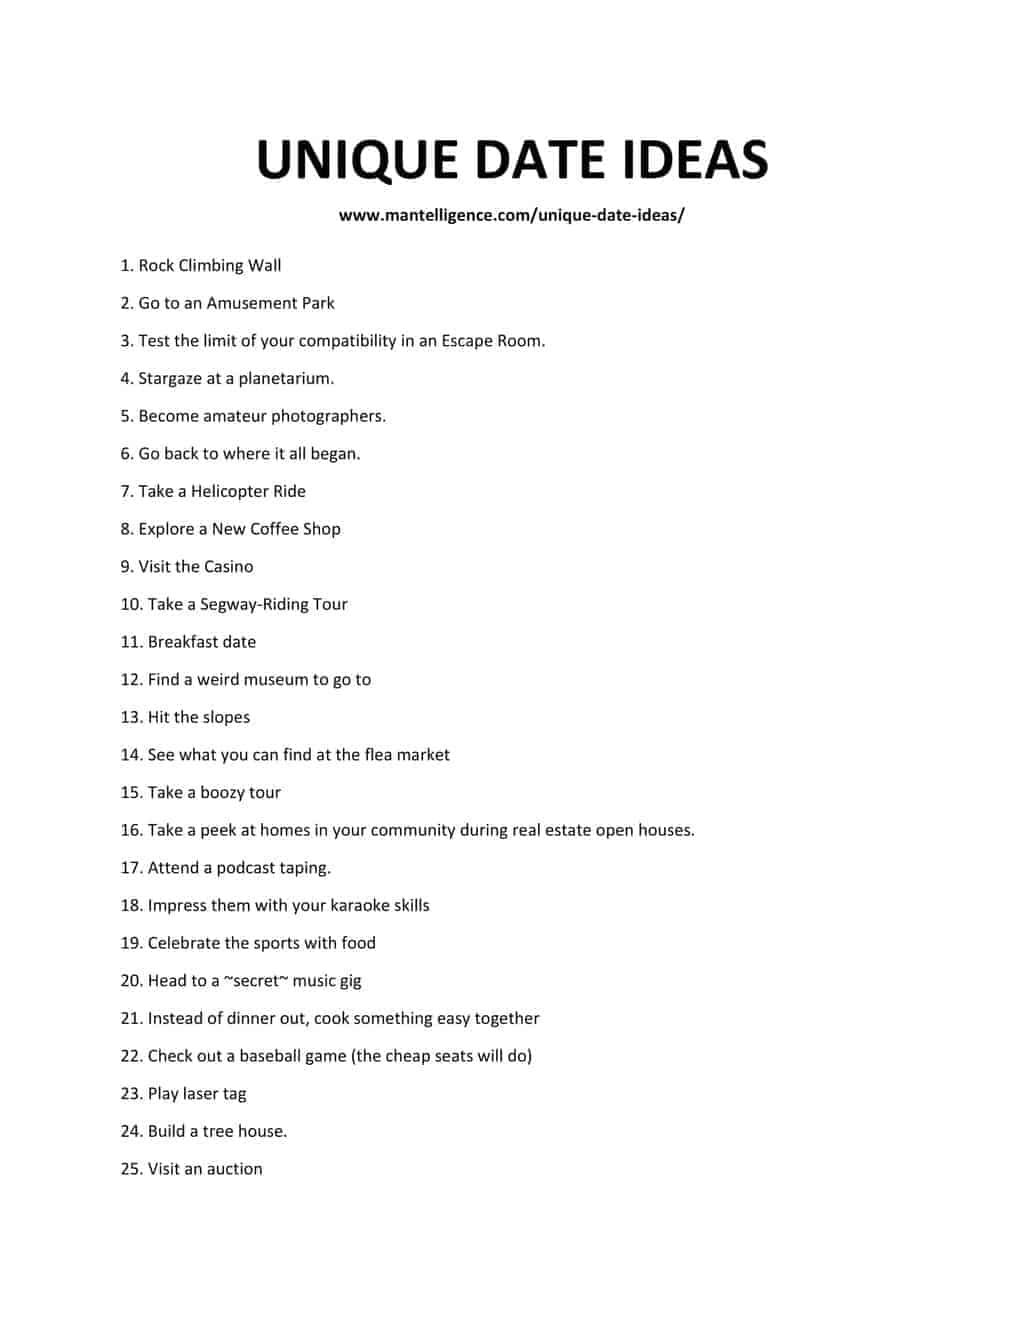 Downloadable and Printable List of Unique Date Ideas